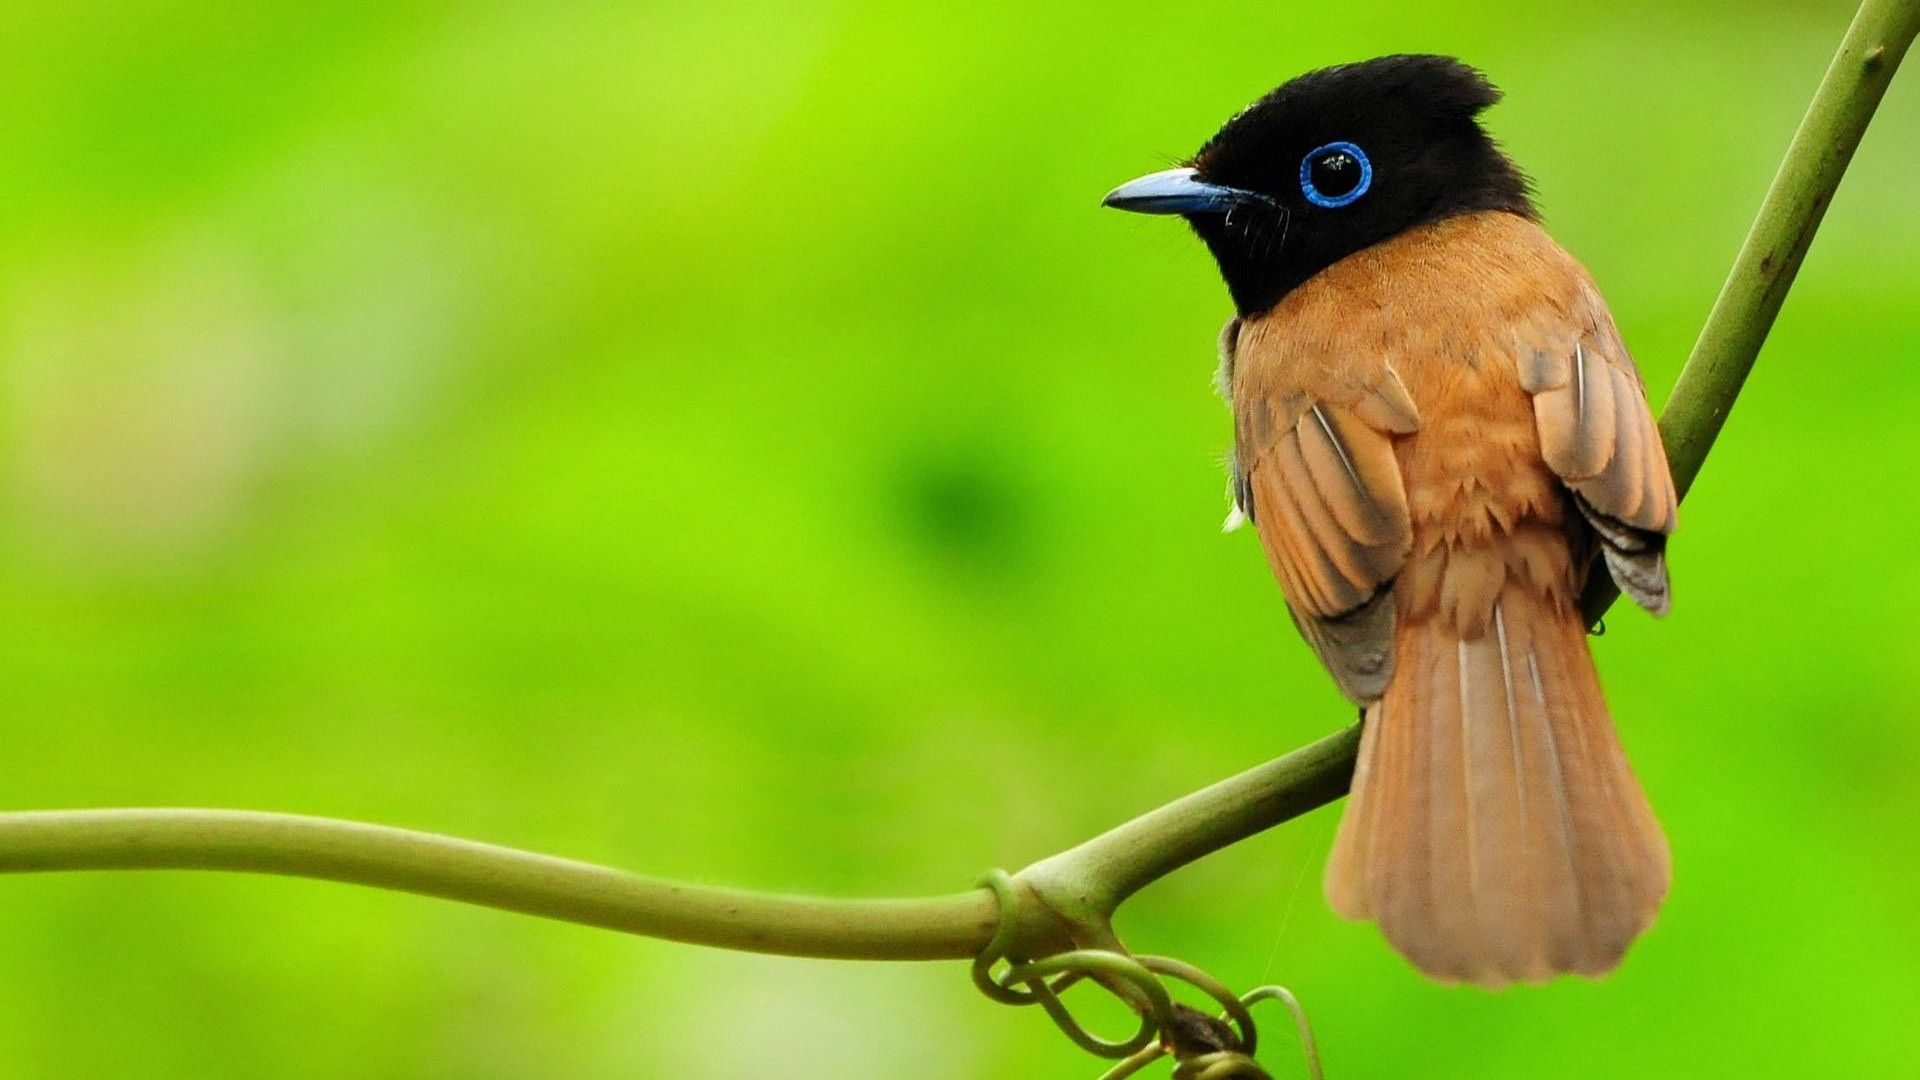 Wallpaper Bird Little Birds Wallpapers 1920x1080 Birds Hd